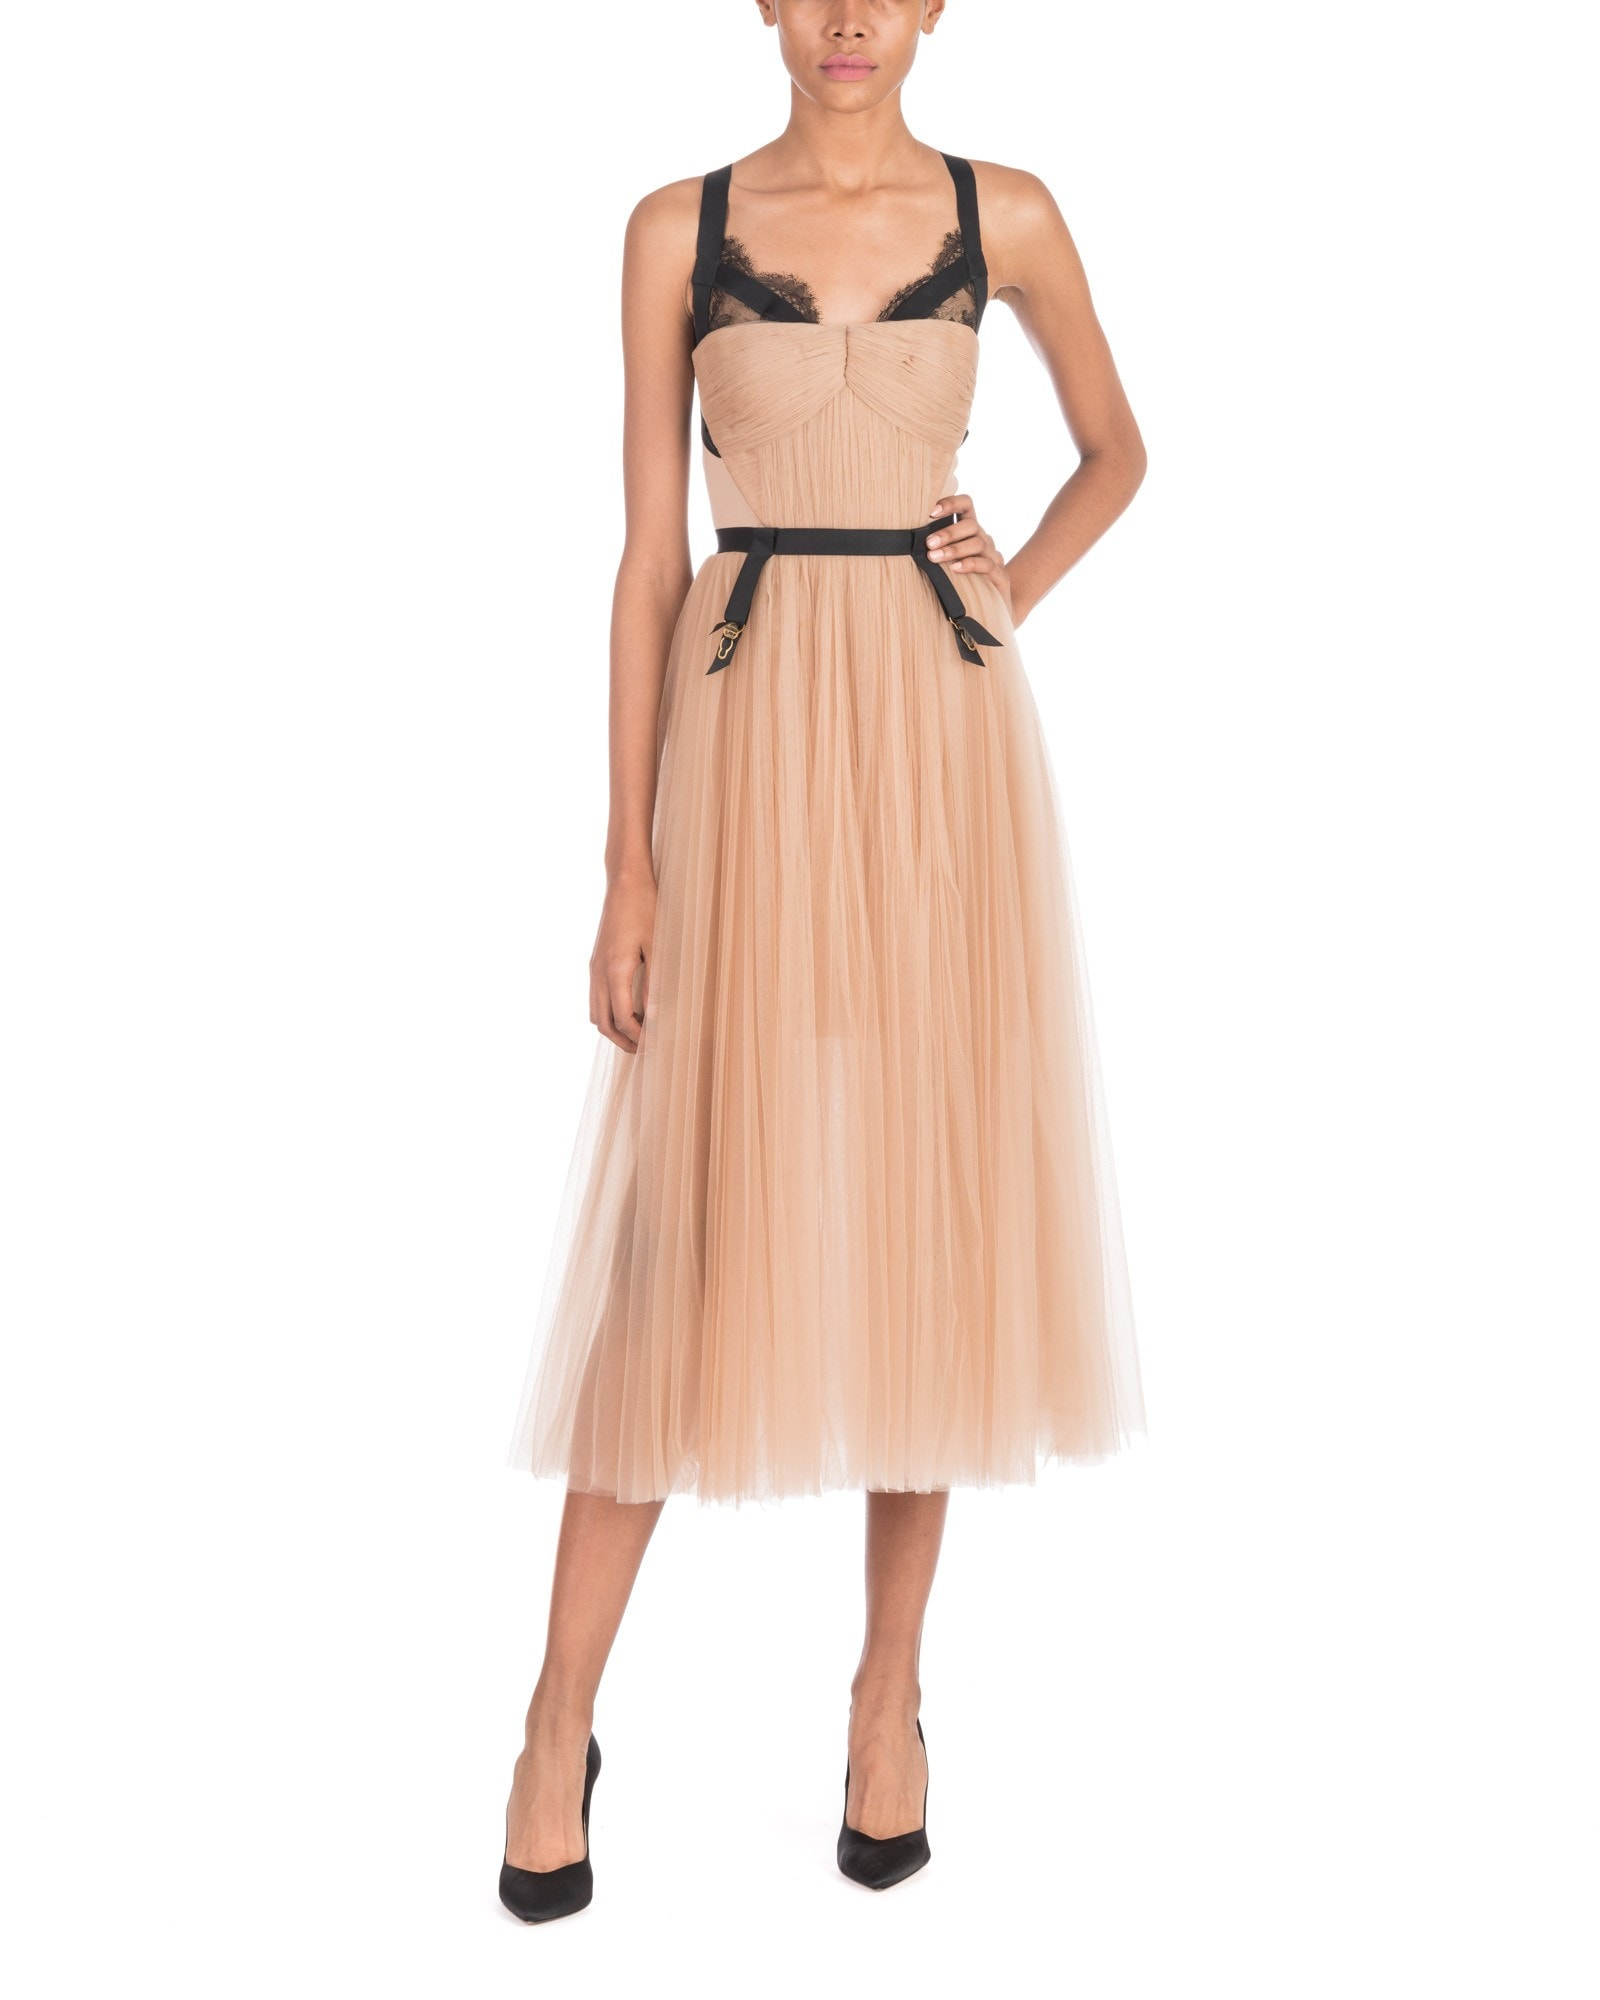 Maysa Dress With Lingerie Detail